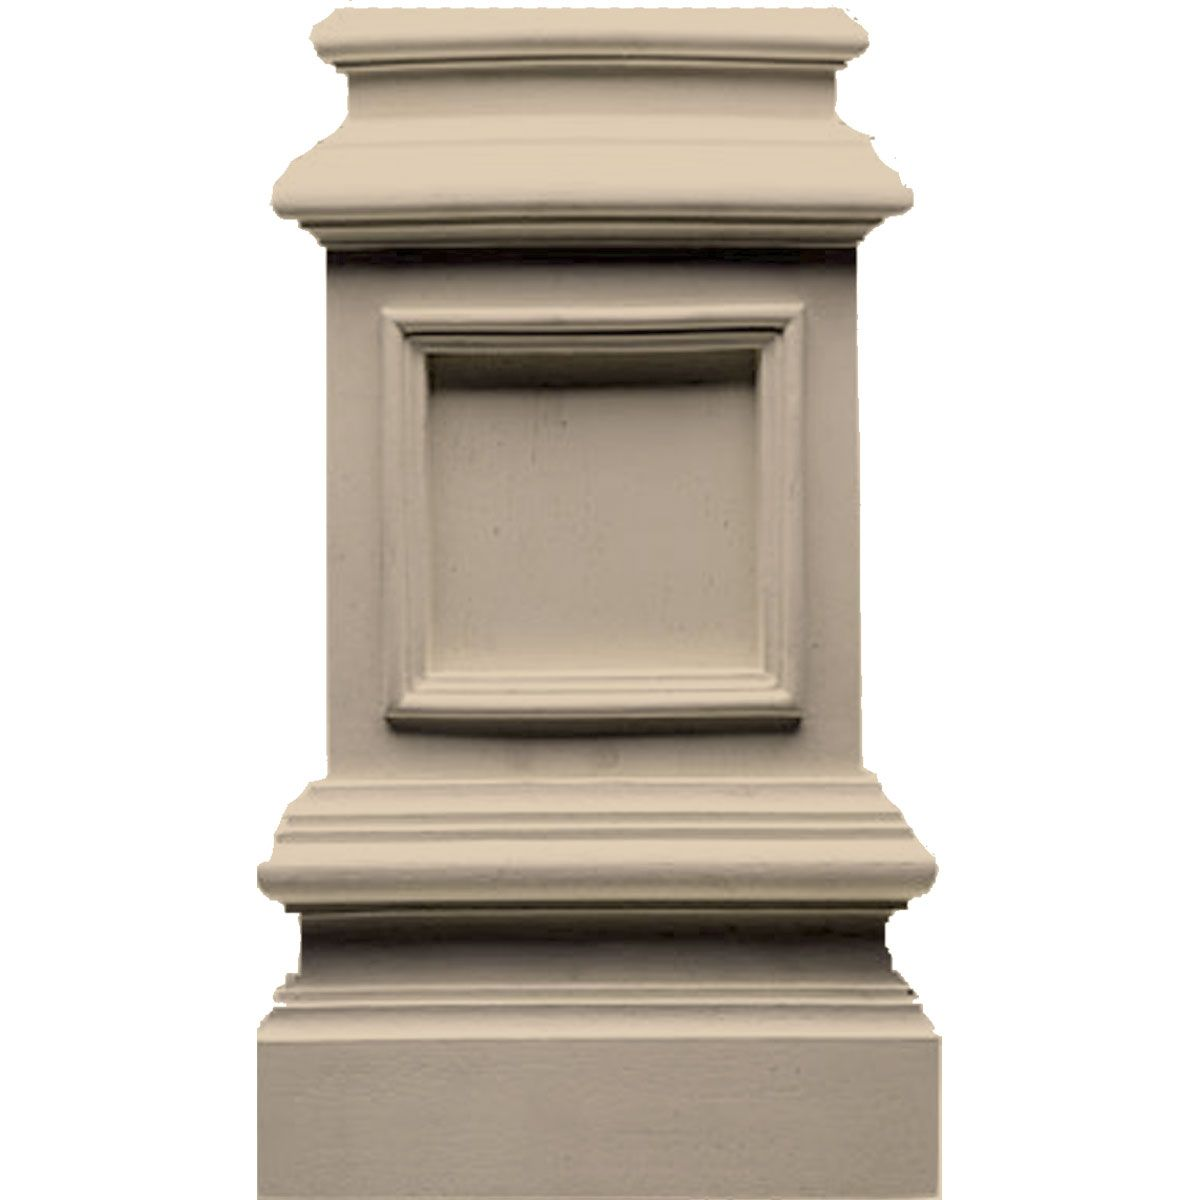 Approx 13 1 4 Inch Bottom 7 1 2 Inch W X 2 1 2 Inch D Sized For Use With 4 1 2 Inch Wide Columns Plinth Blocks Moldings And Trim Wood Pedestal